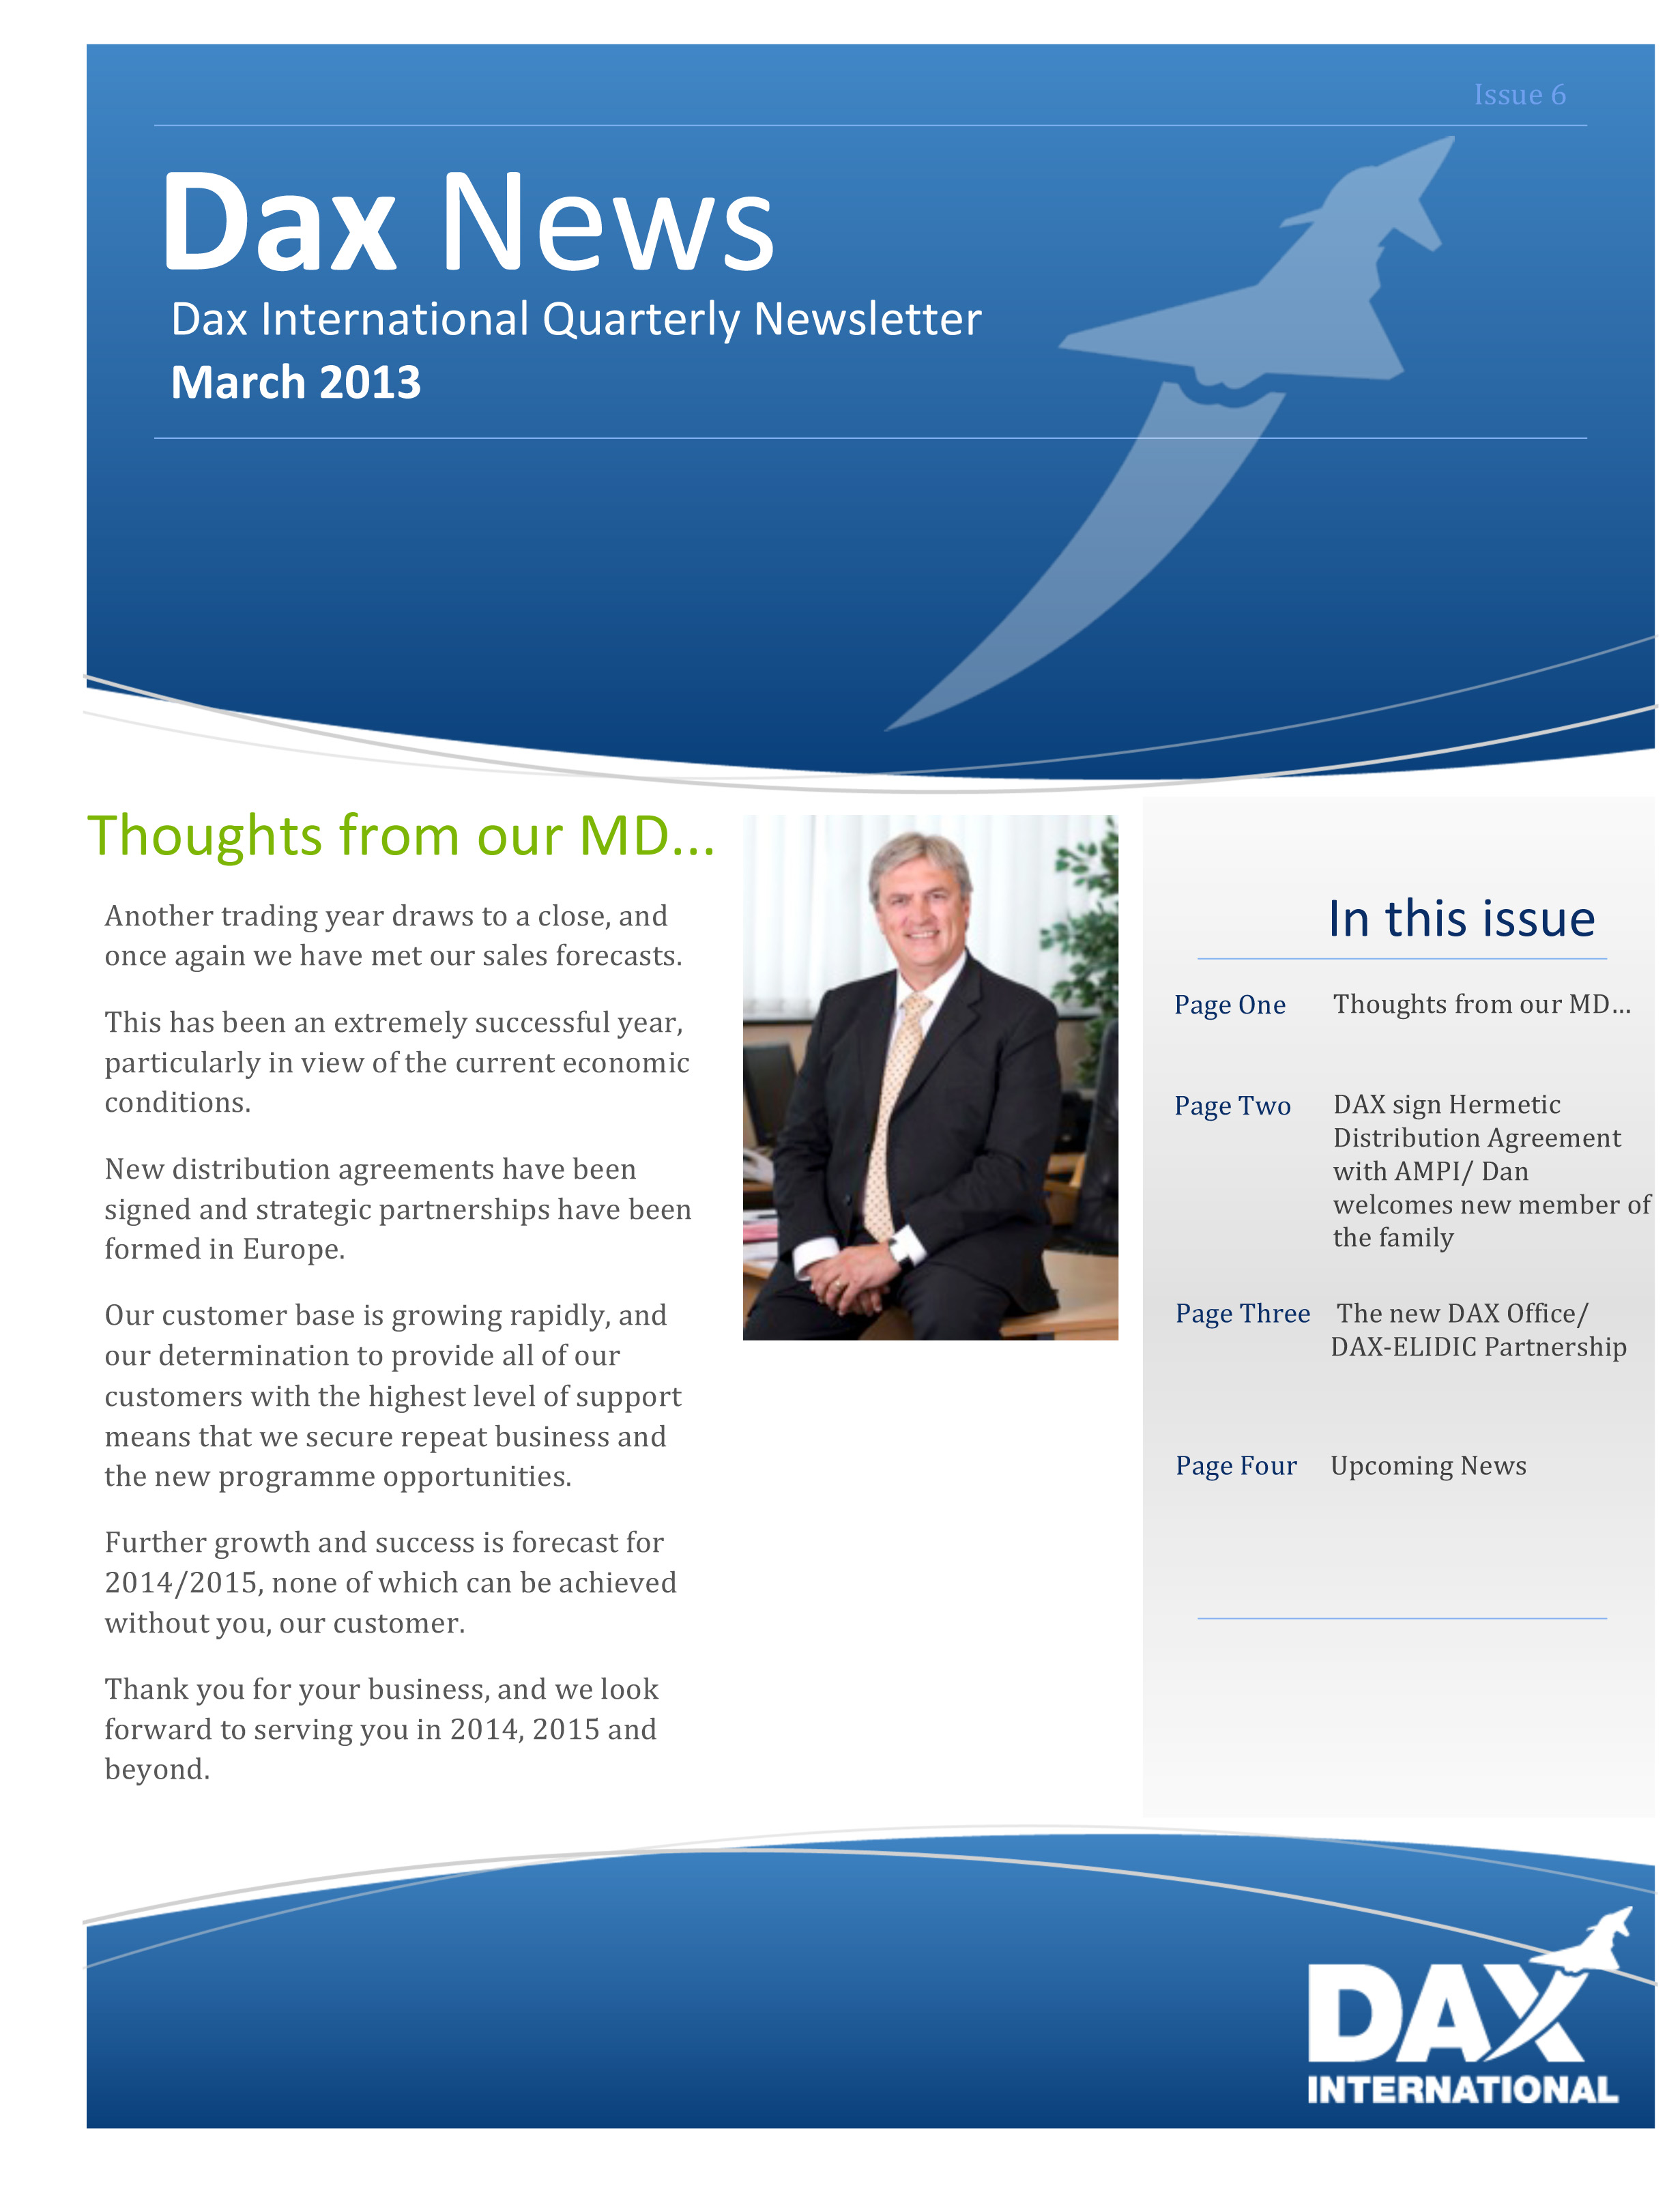 Microsoft Word - DAX Newsletter March 2013.docx